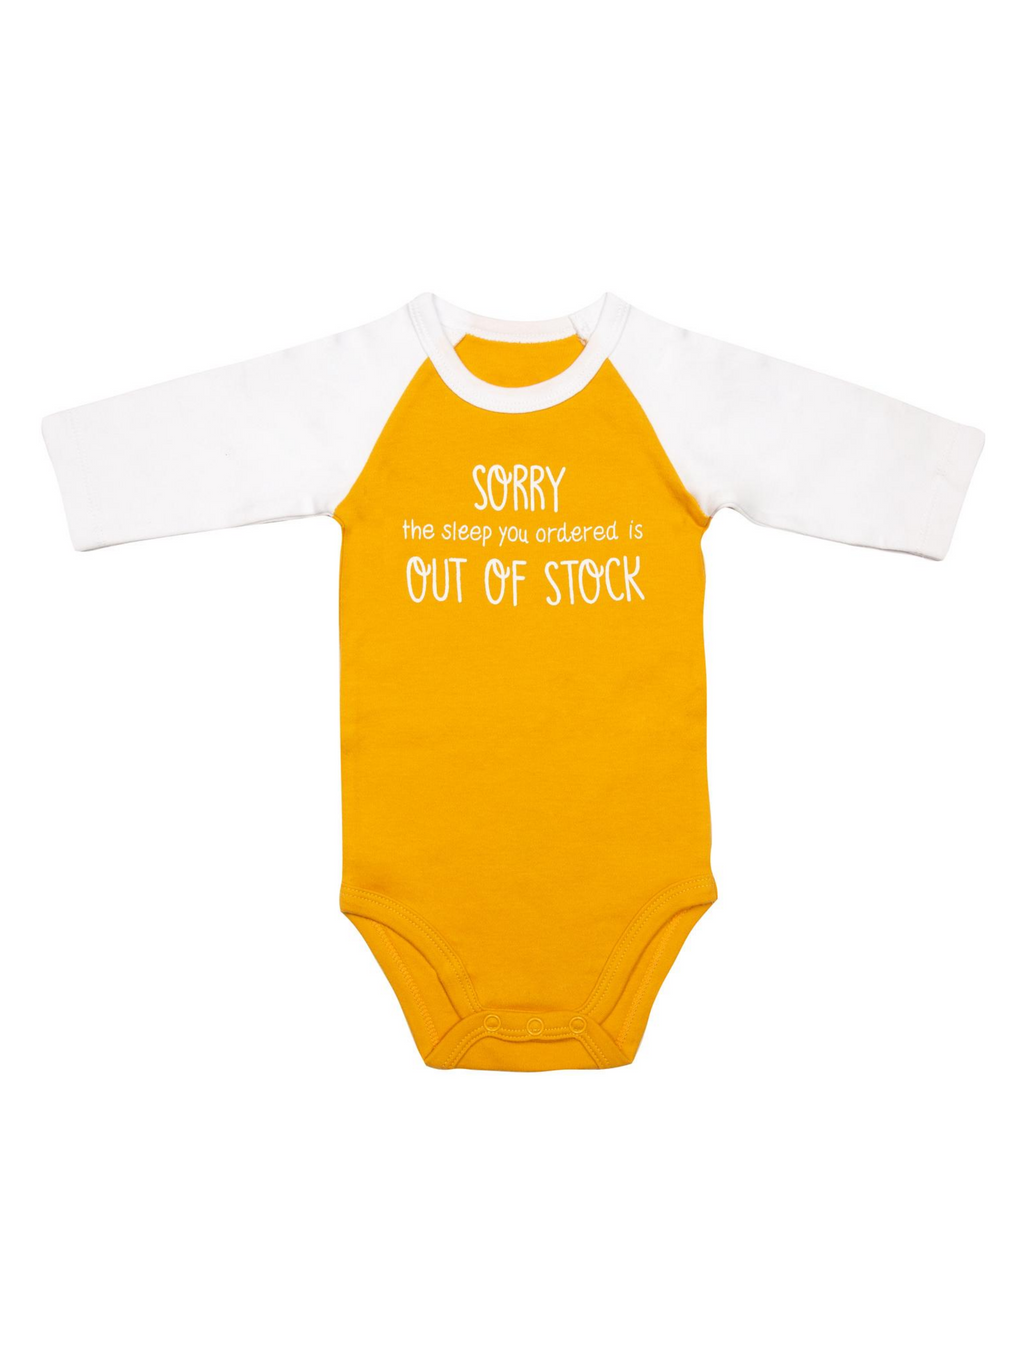 Out of Stock Onesie